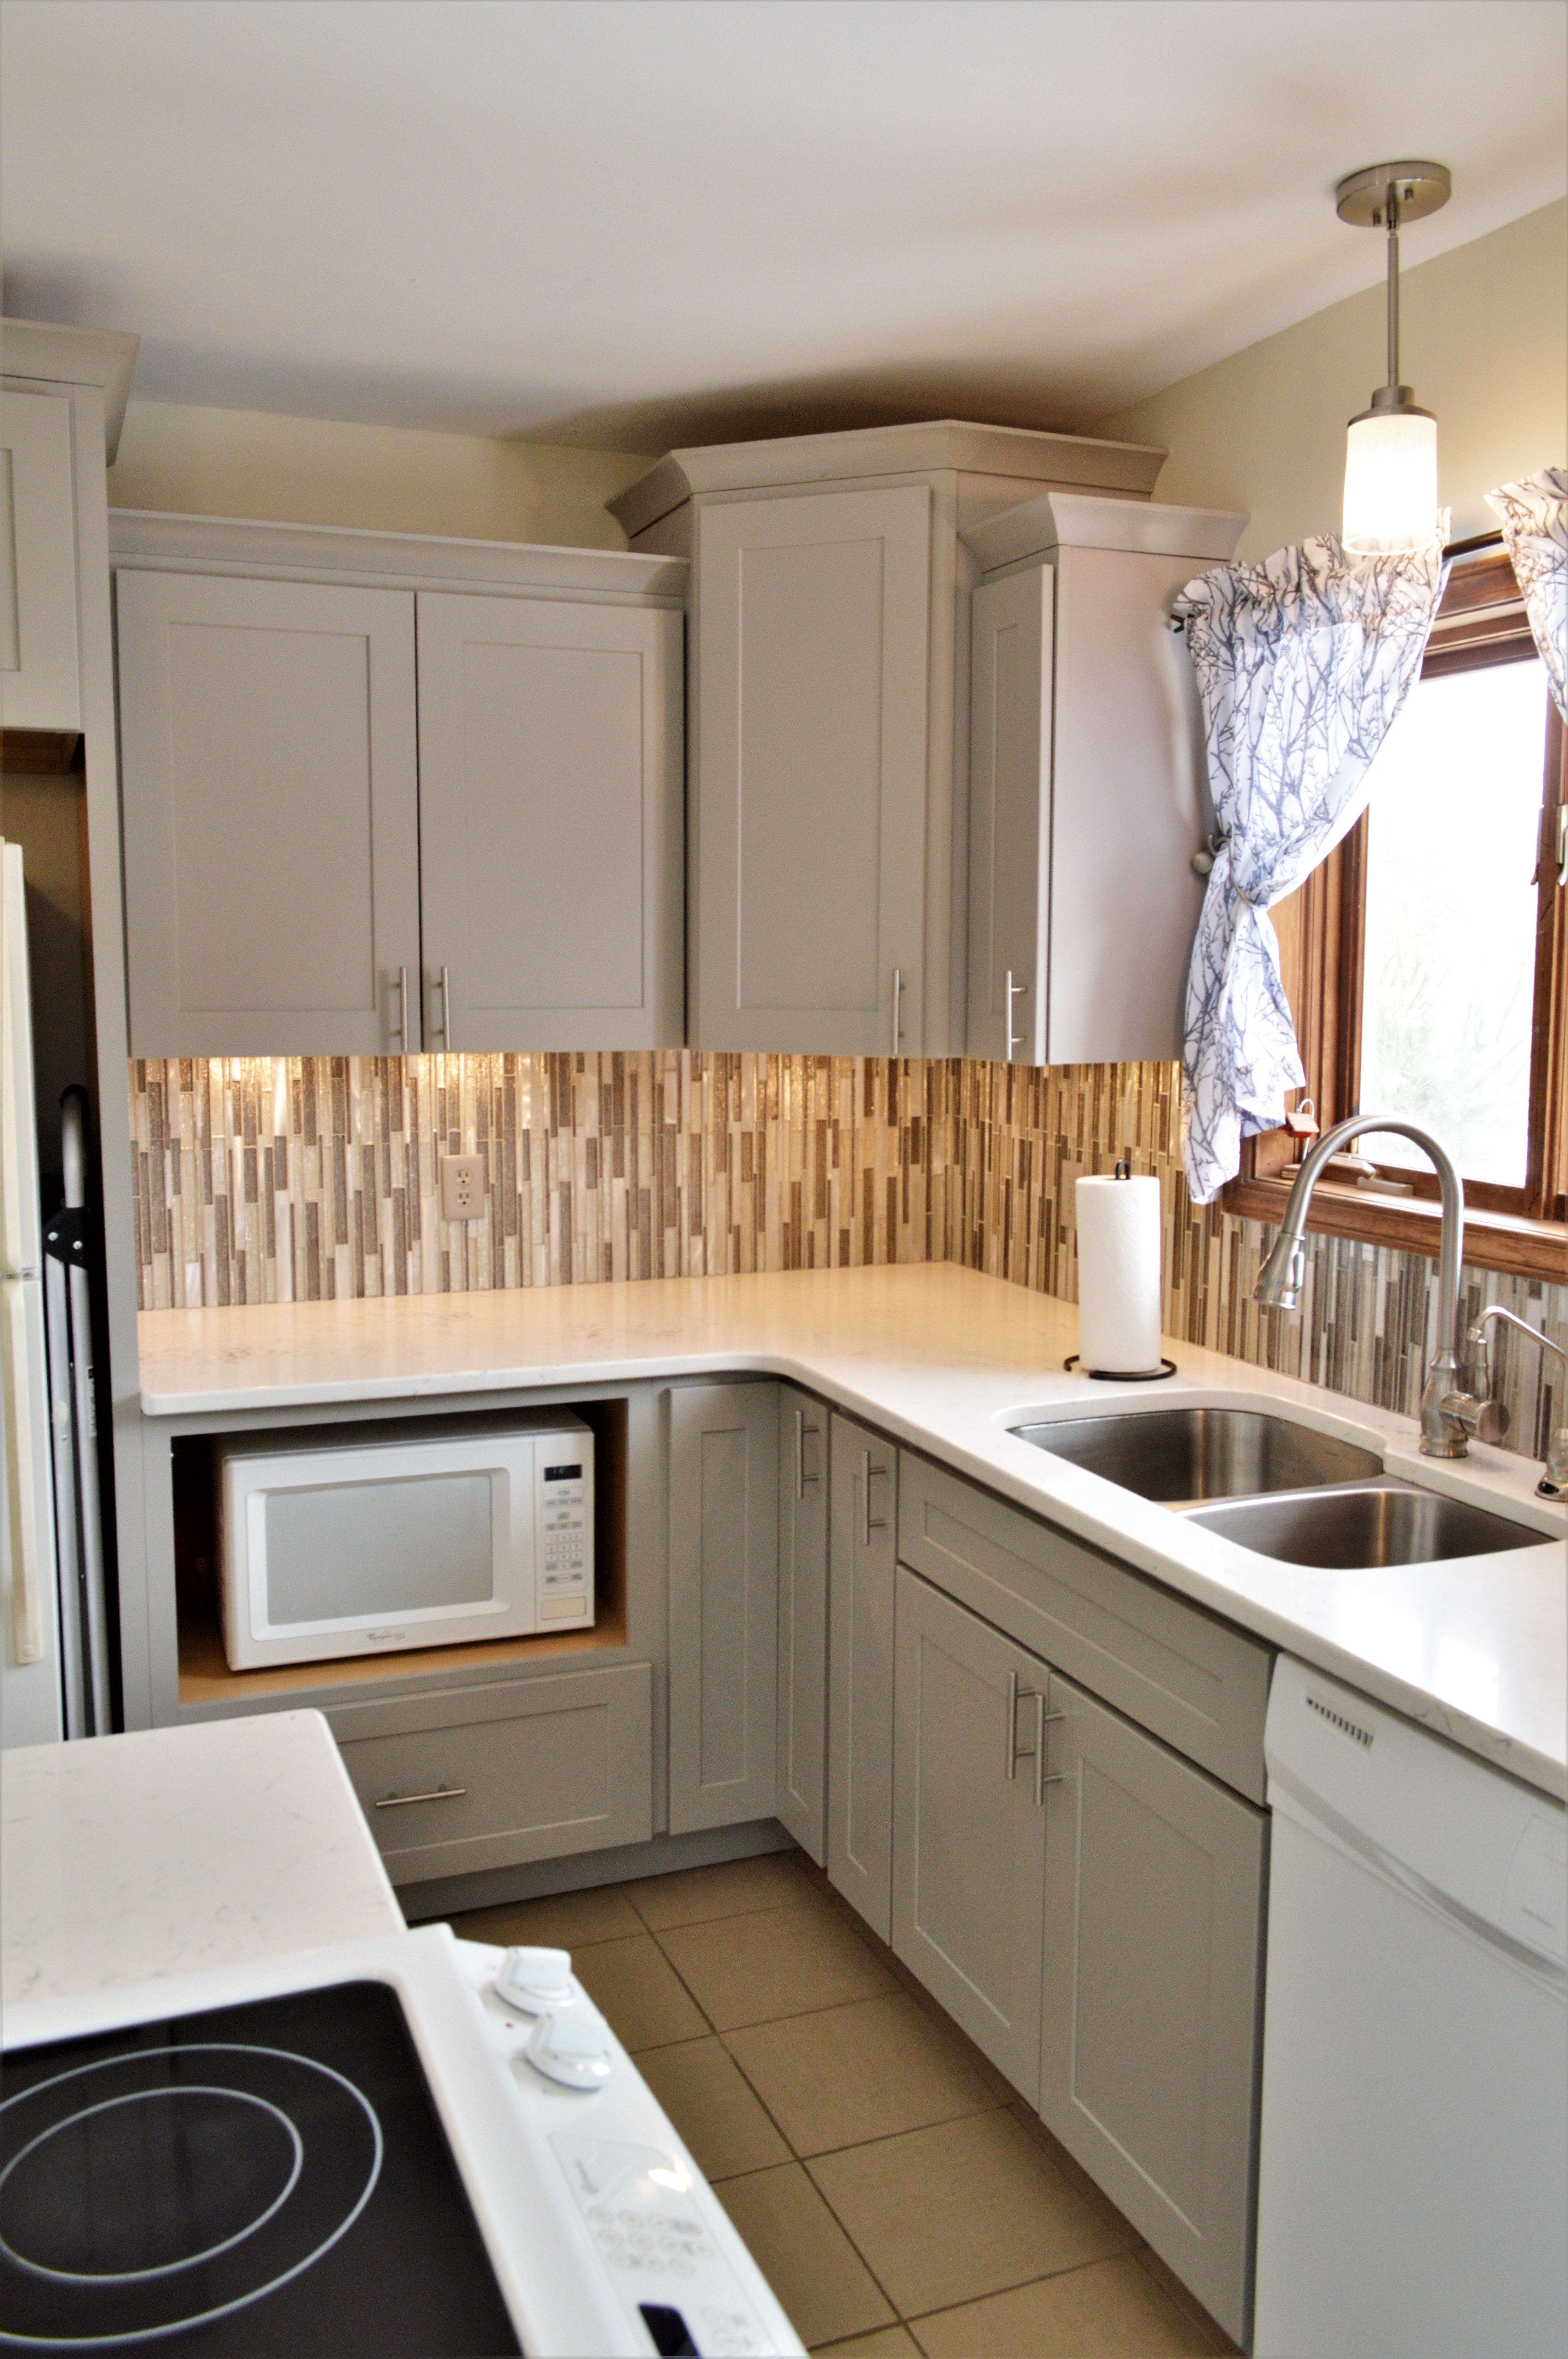 Bailey's Cabinets | Home decor, Cabinet